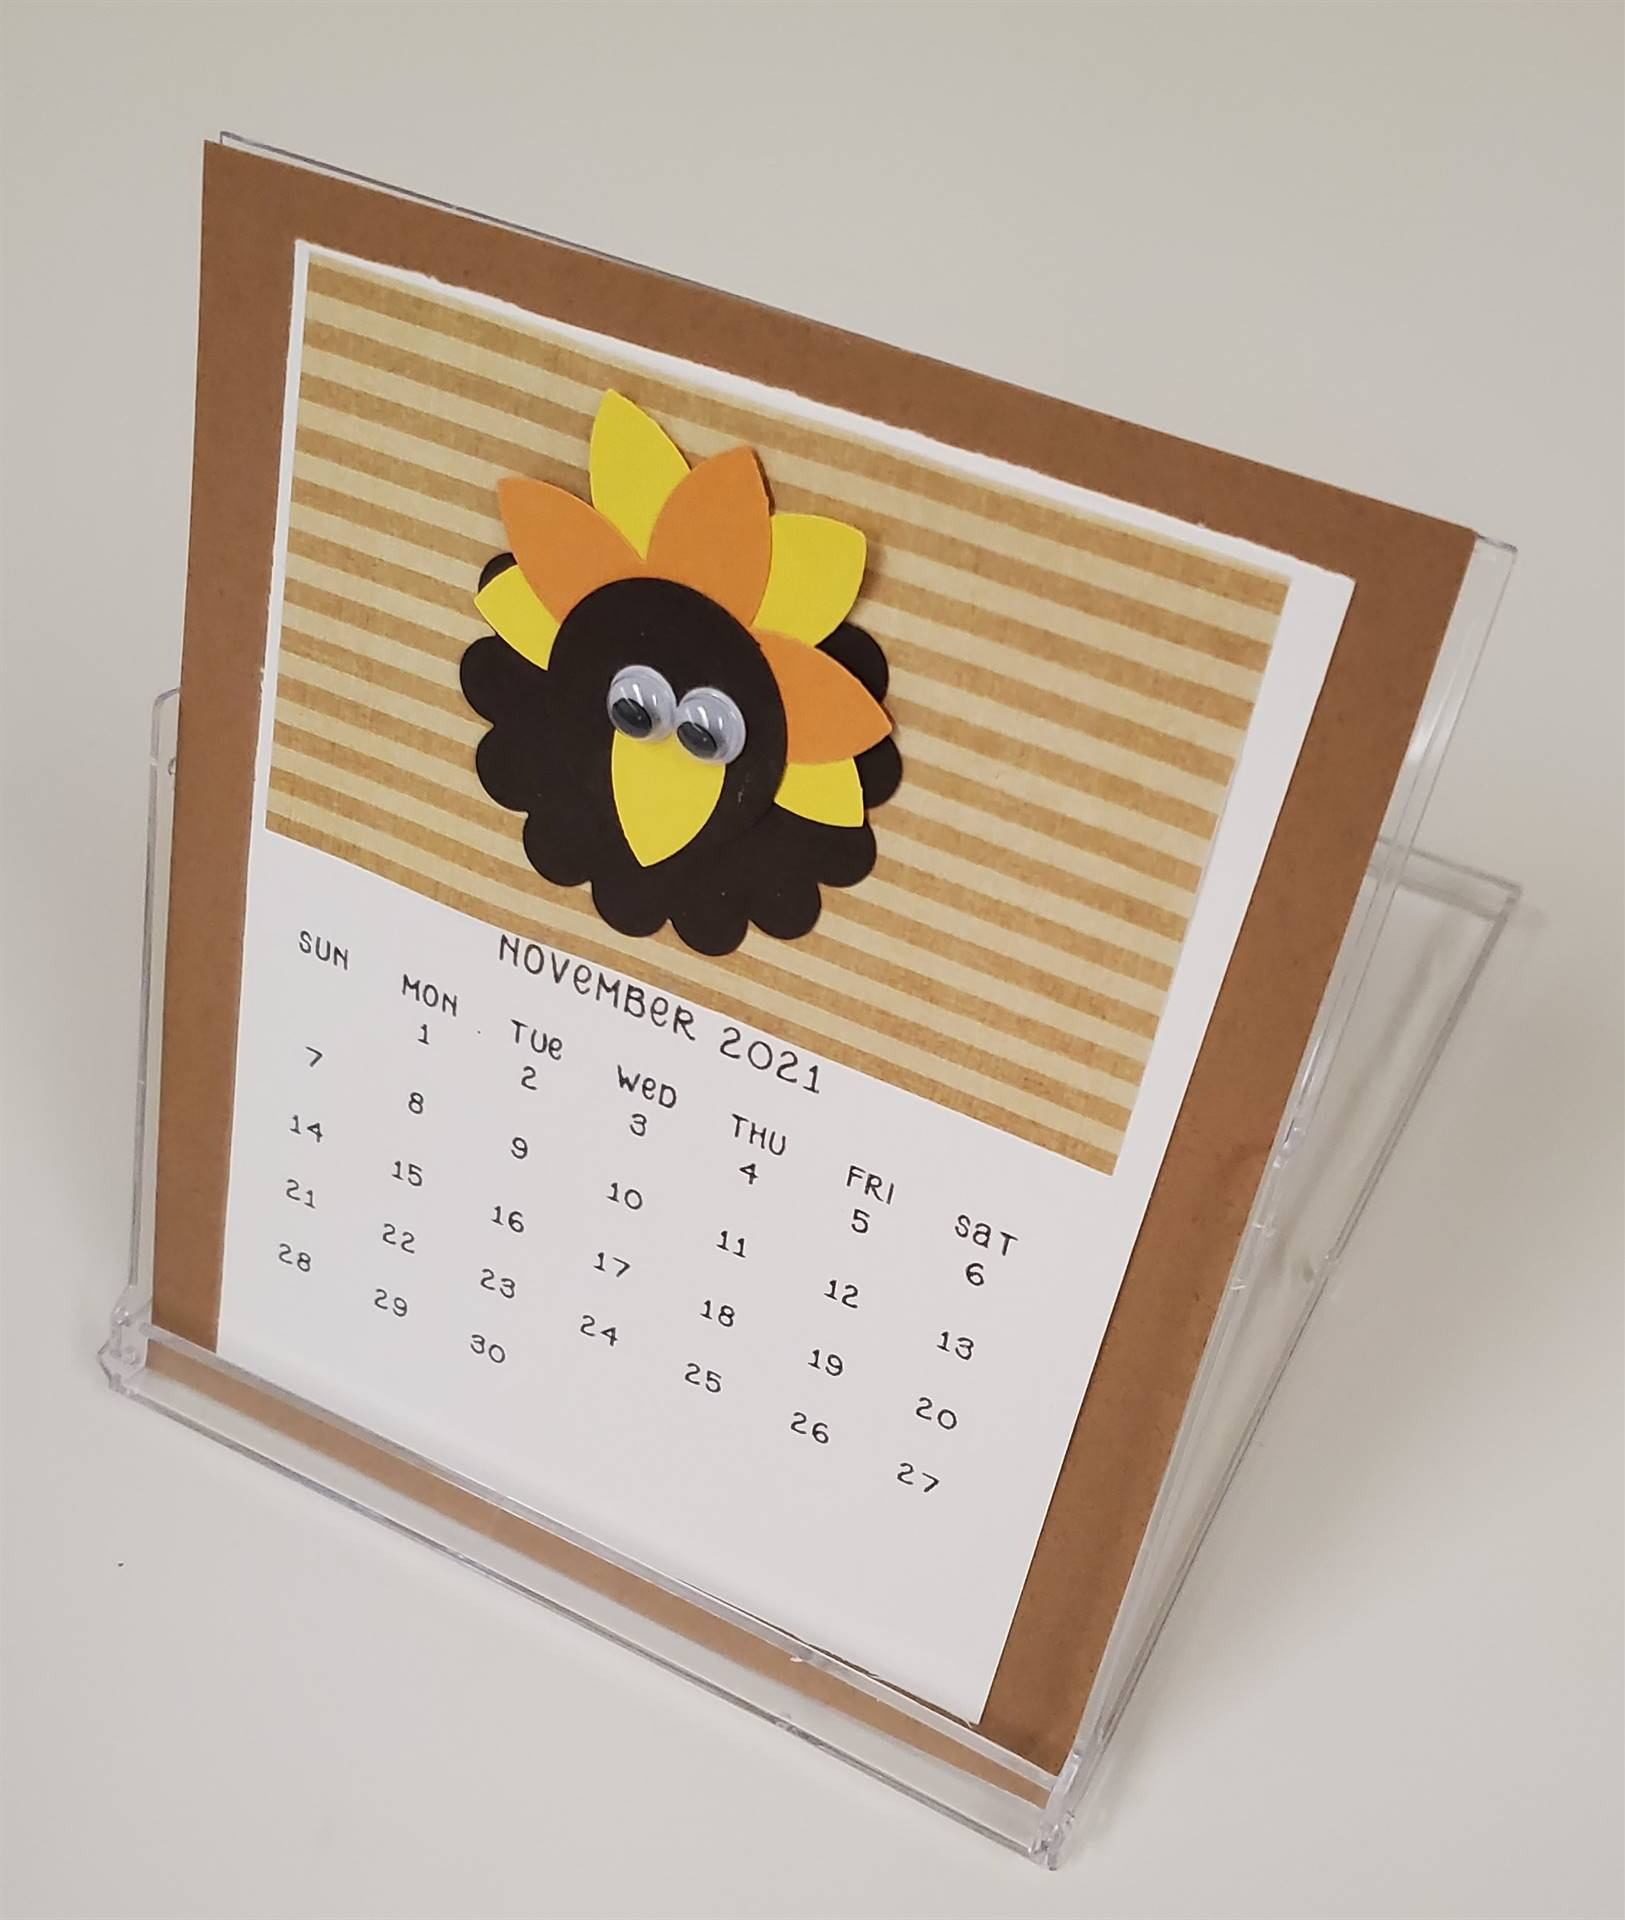 The calendars come with a display case, so that they can sit nicely on your desk!